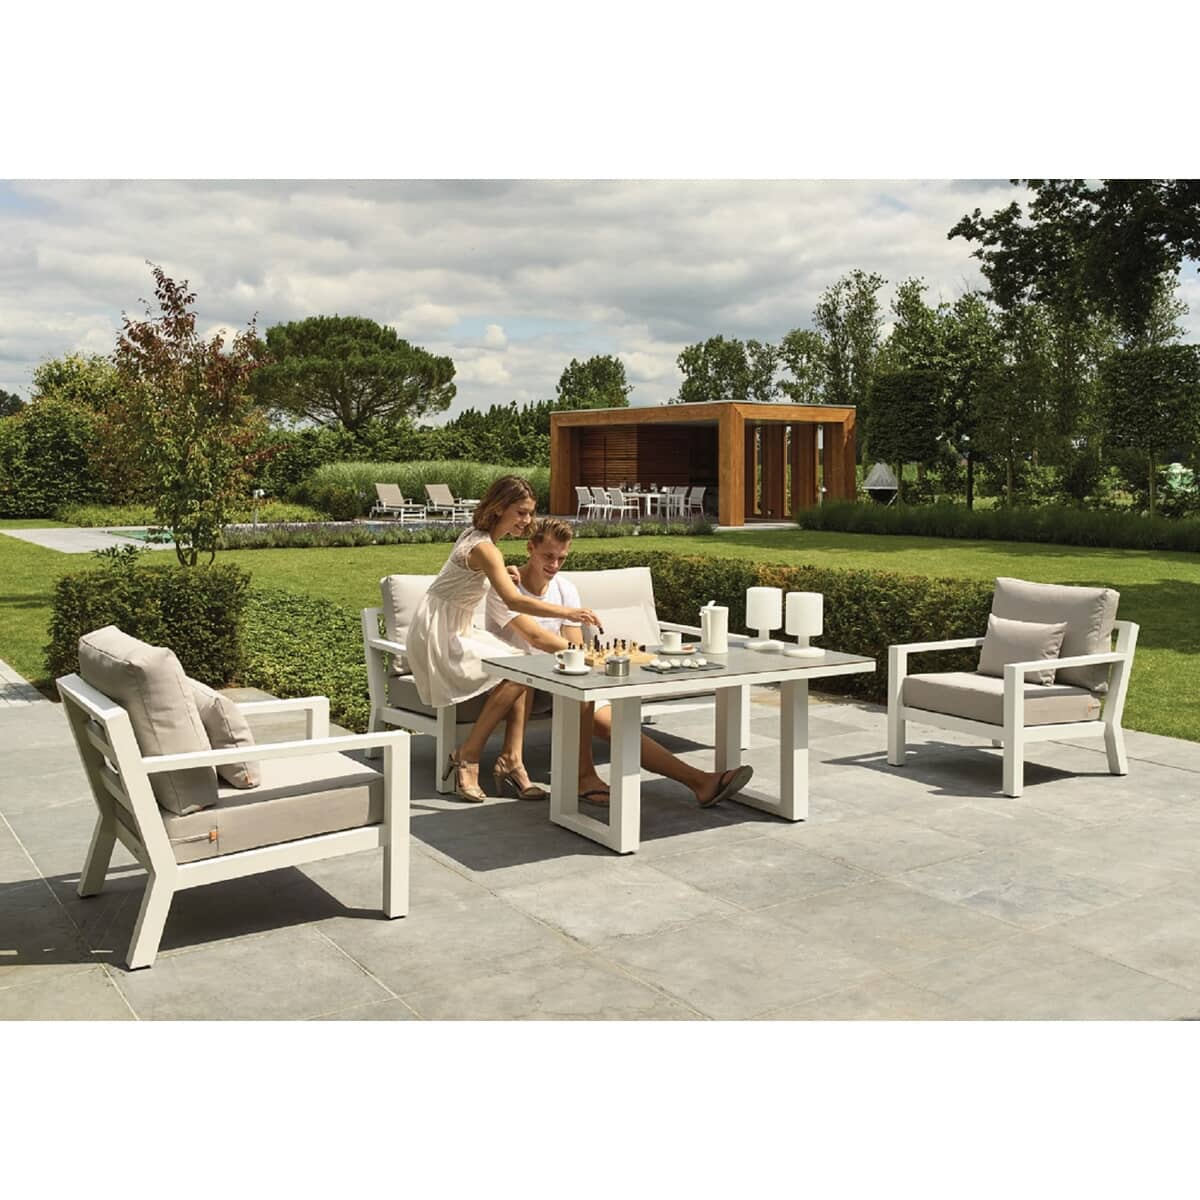 Life timber lounge set white with mouse grey cushions